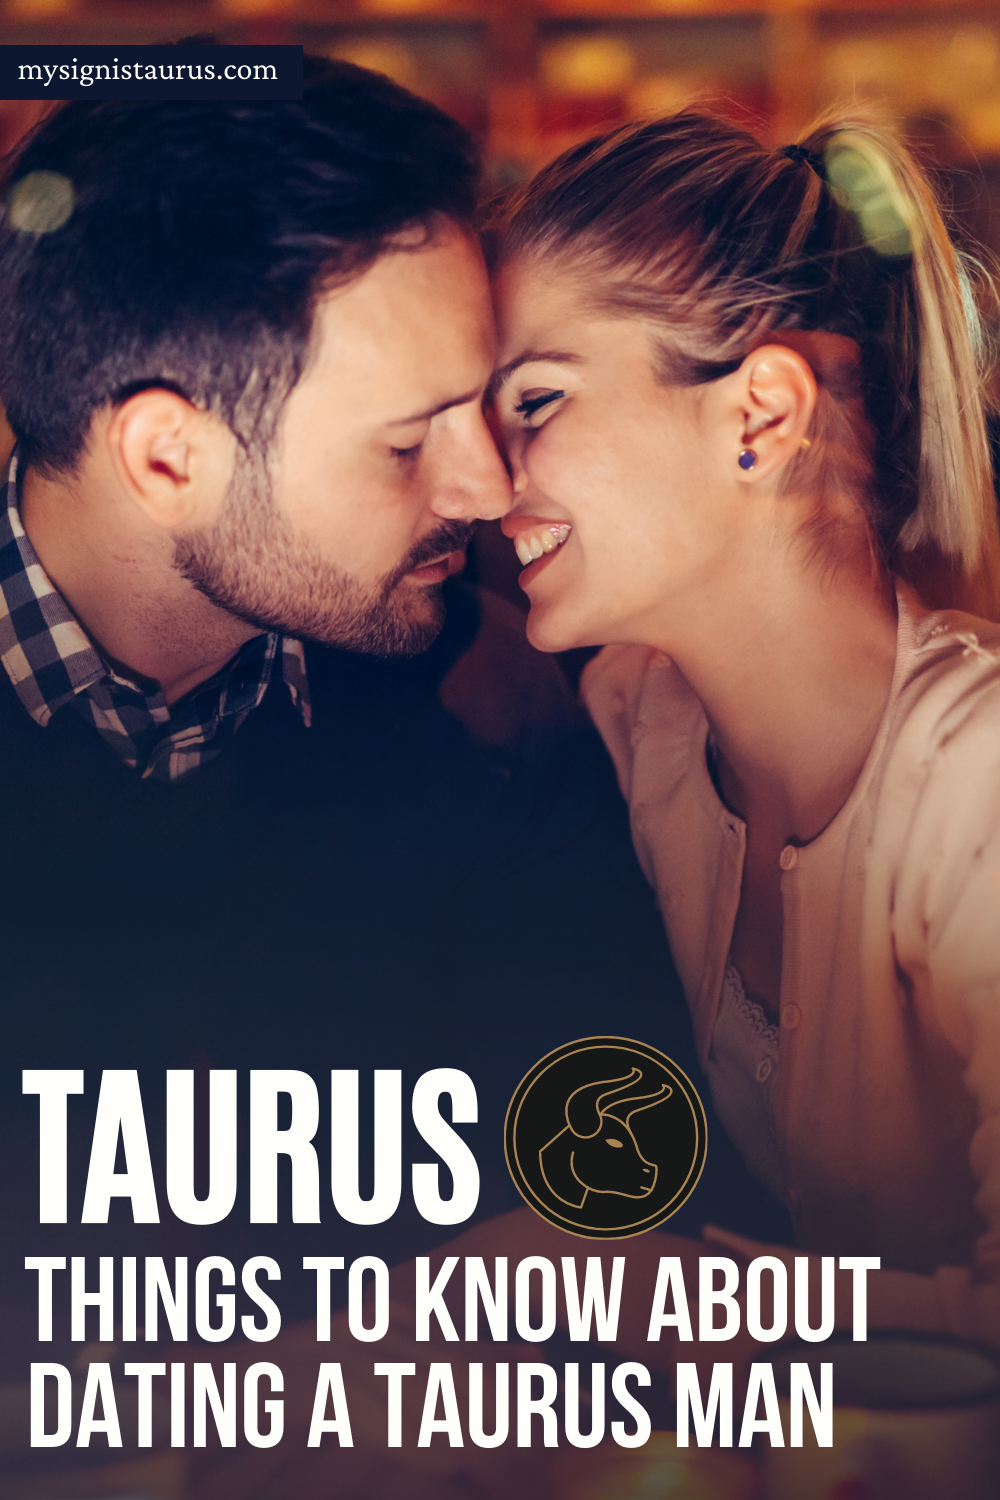 4 Things To Know About Dating A Taurus Man - My Sign Is Taurus